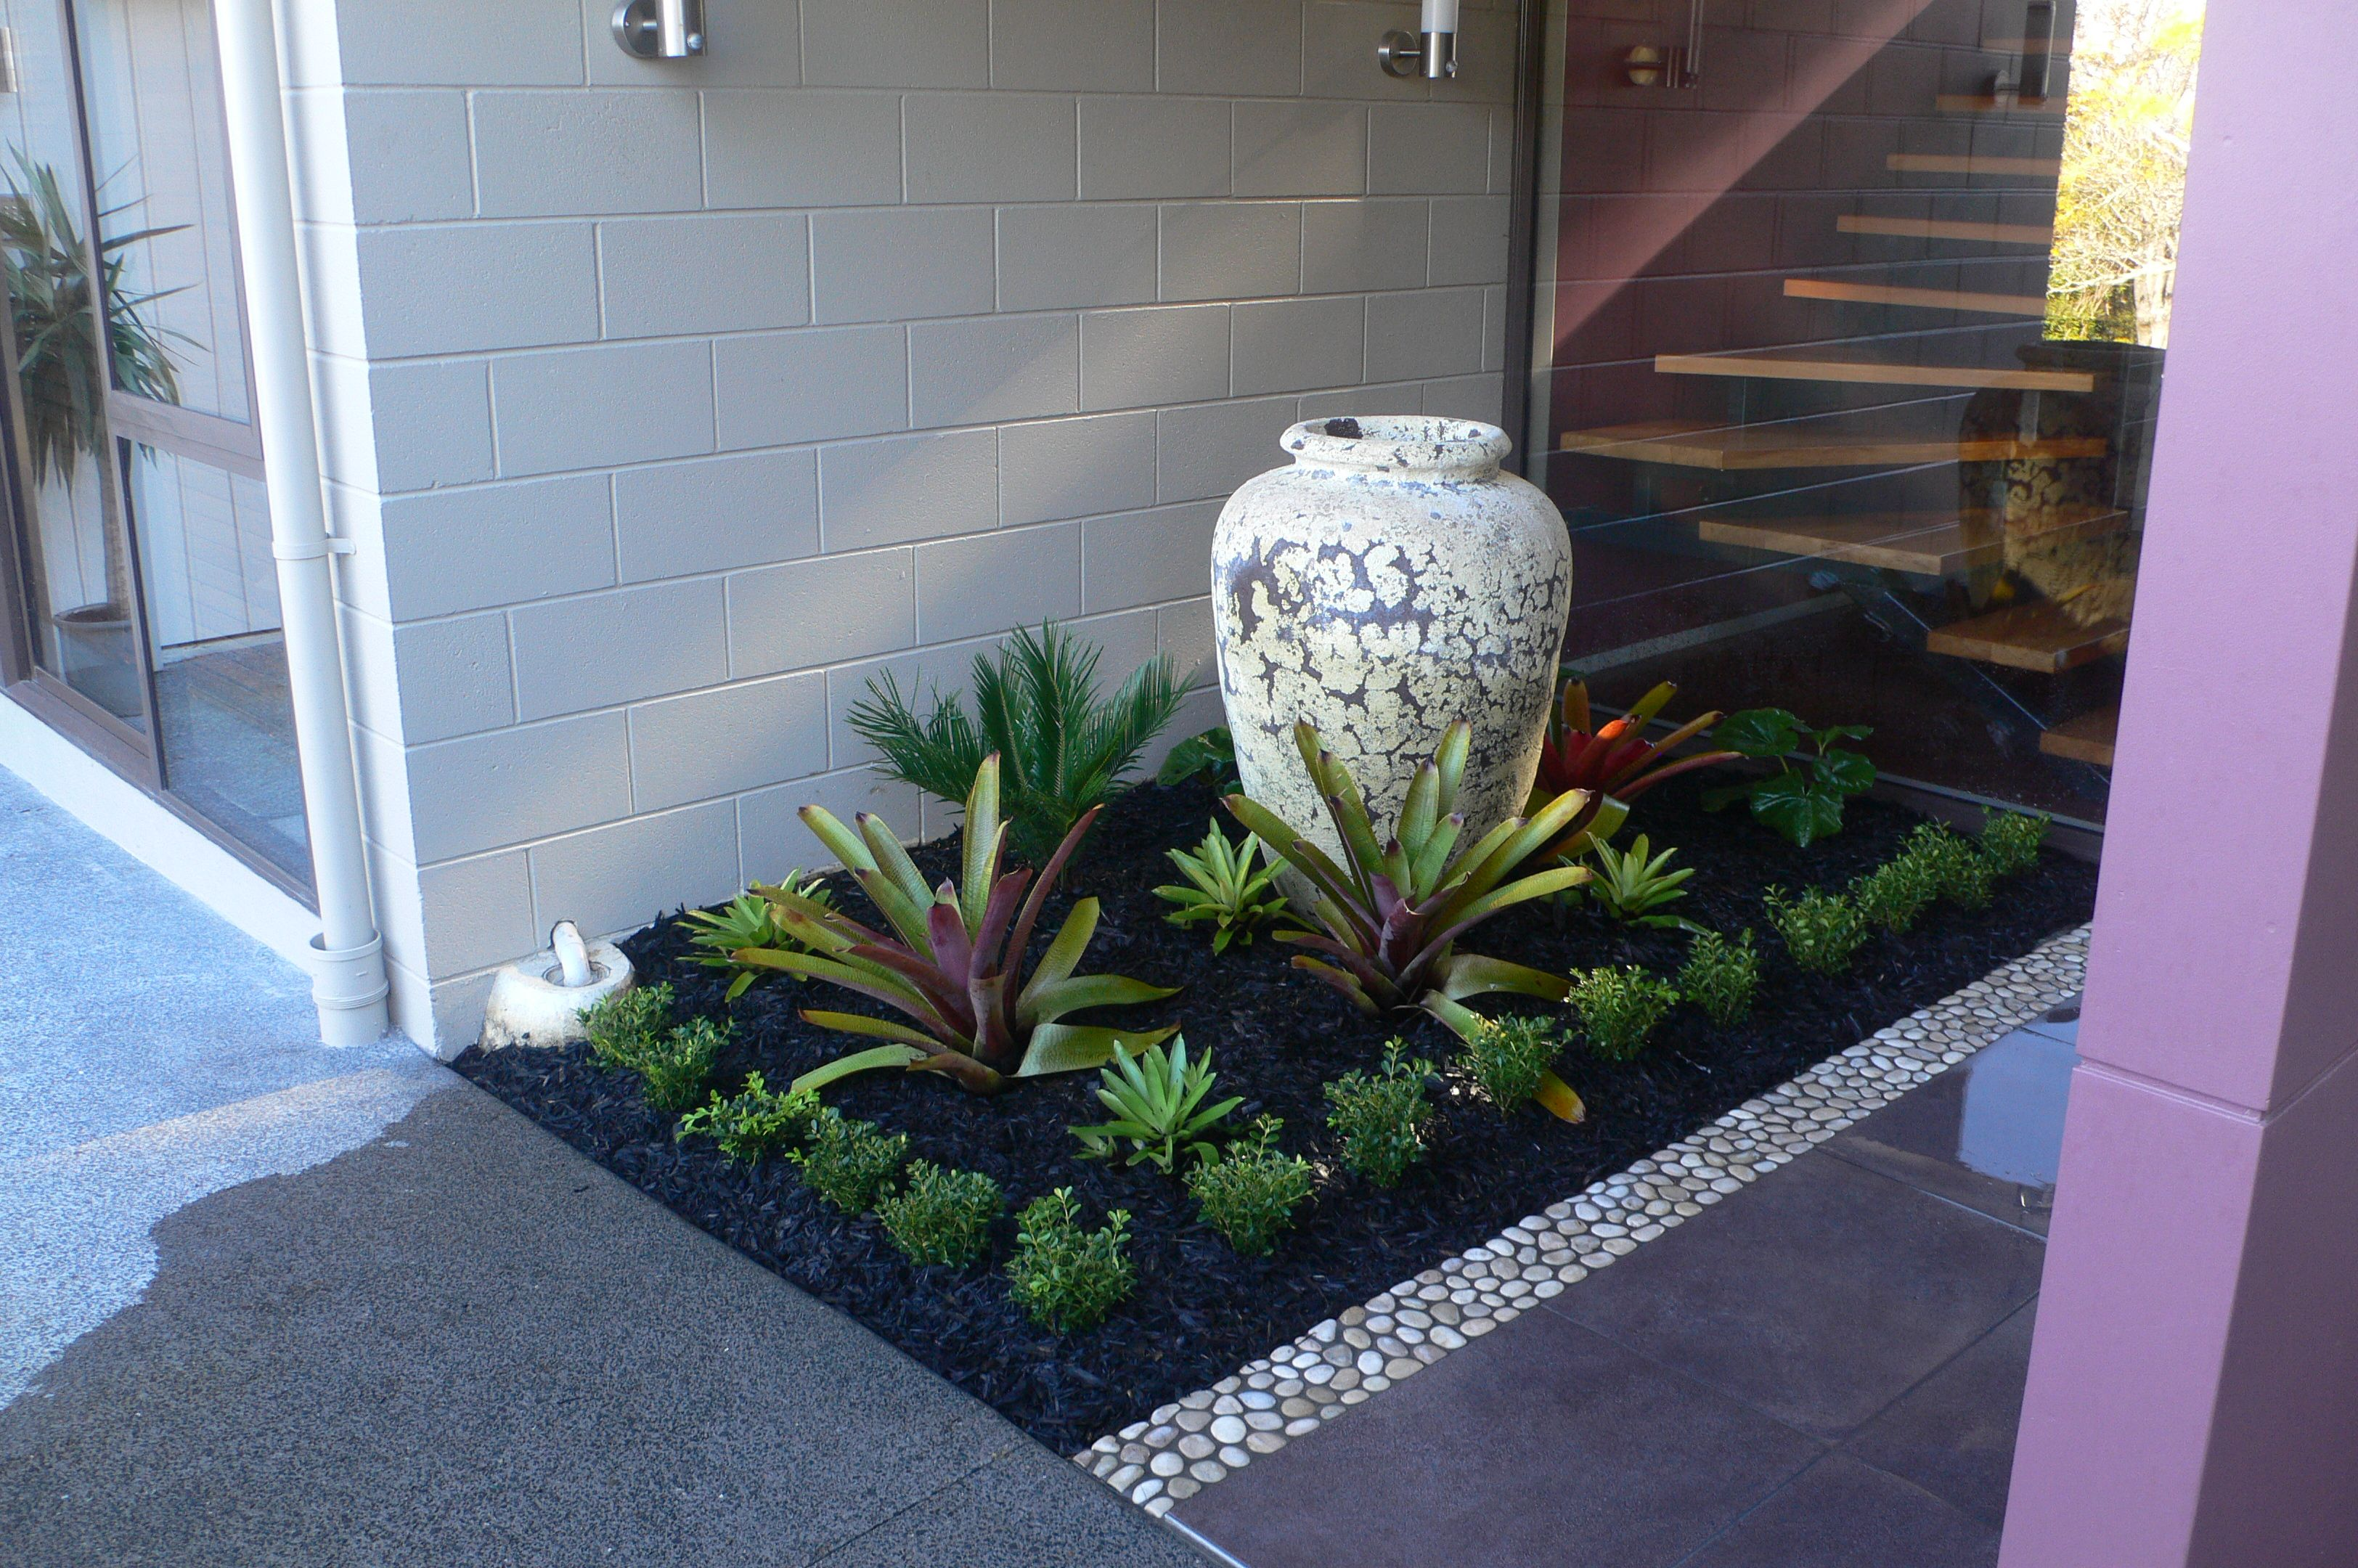 A Small Garden At A Front Entrance Designed And Implemented By